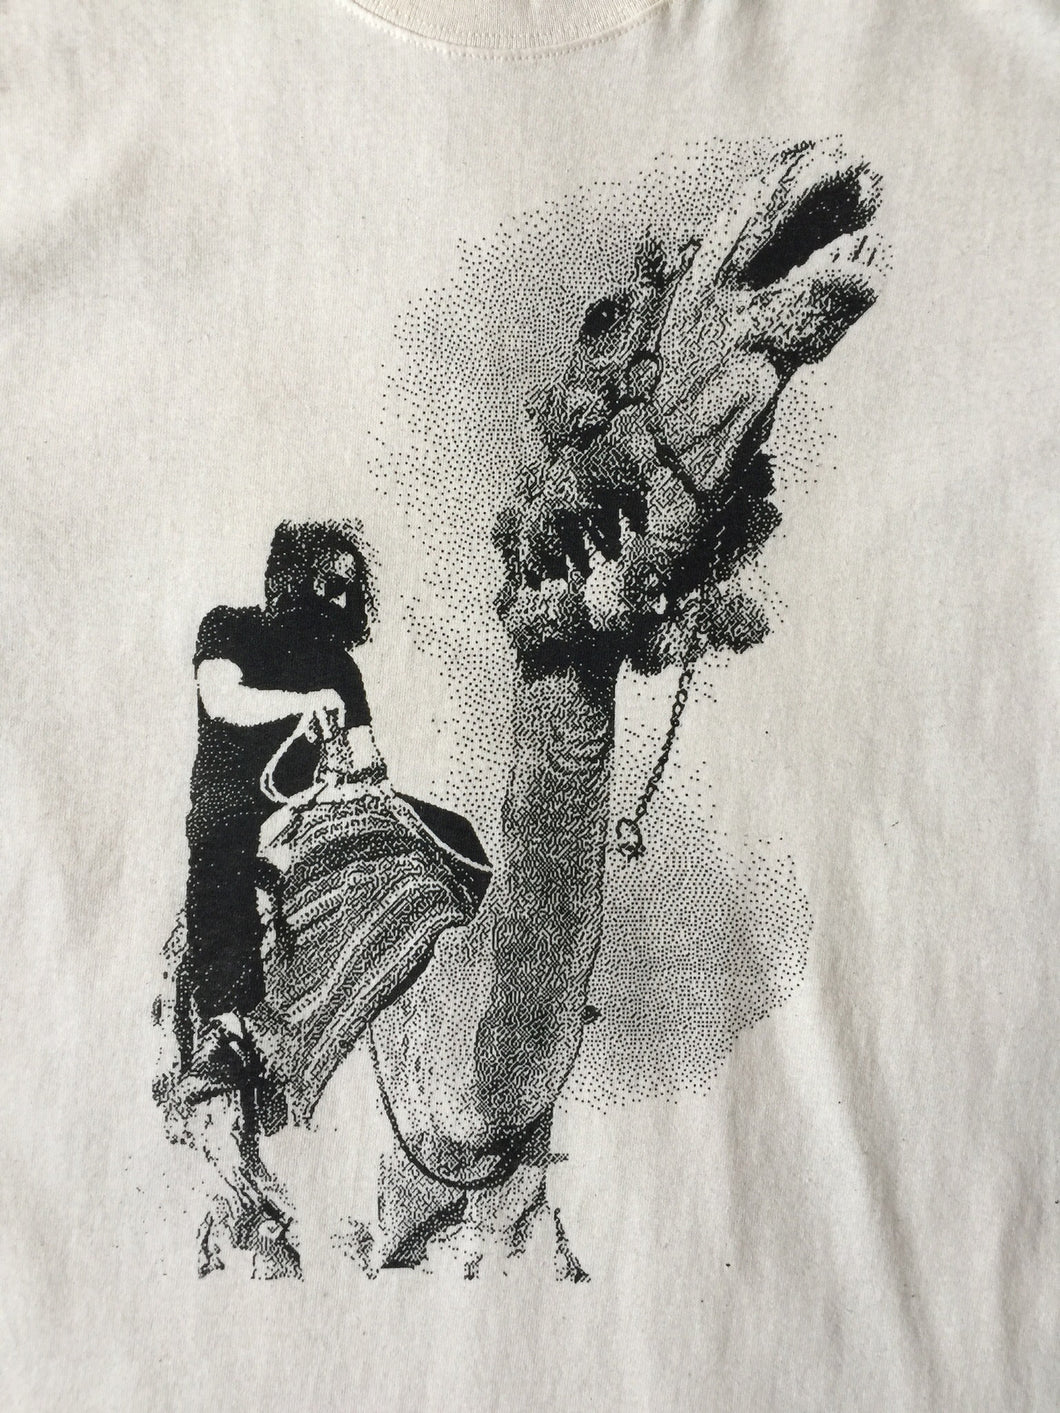 Dead|Jerry Garcia on a Camel|T Shirt